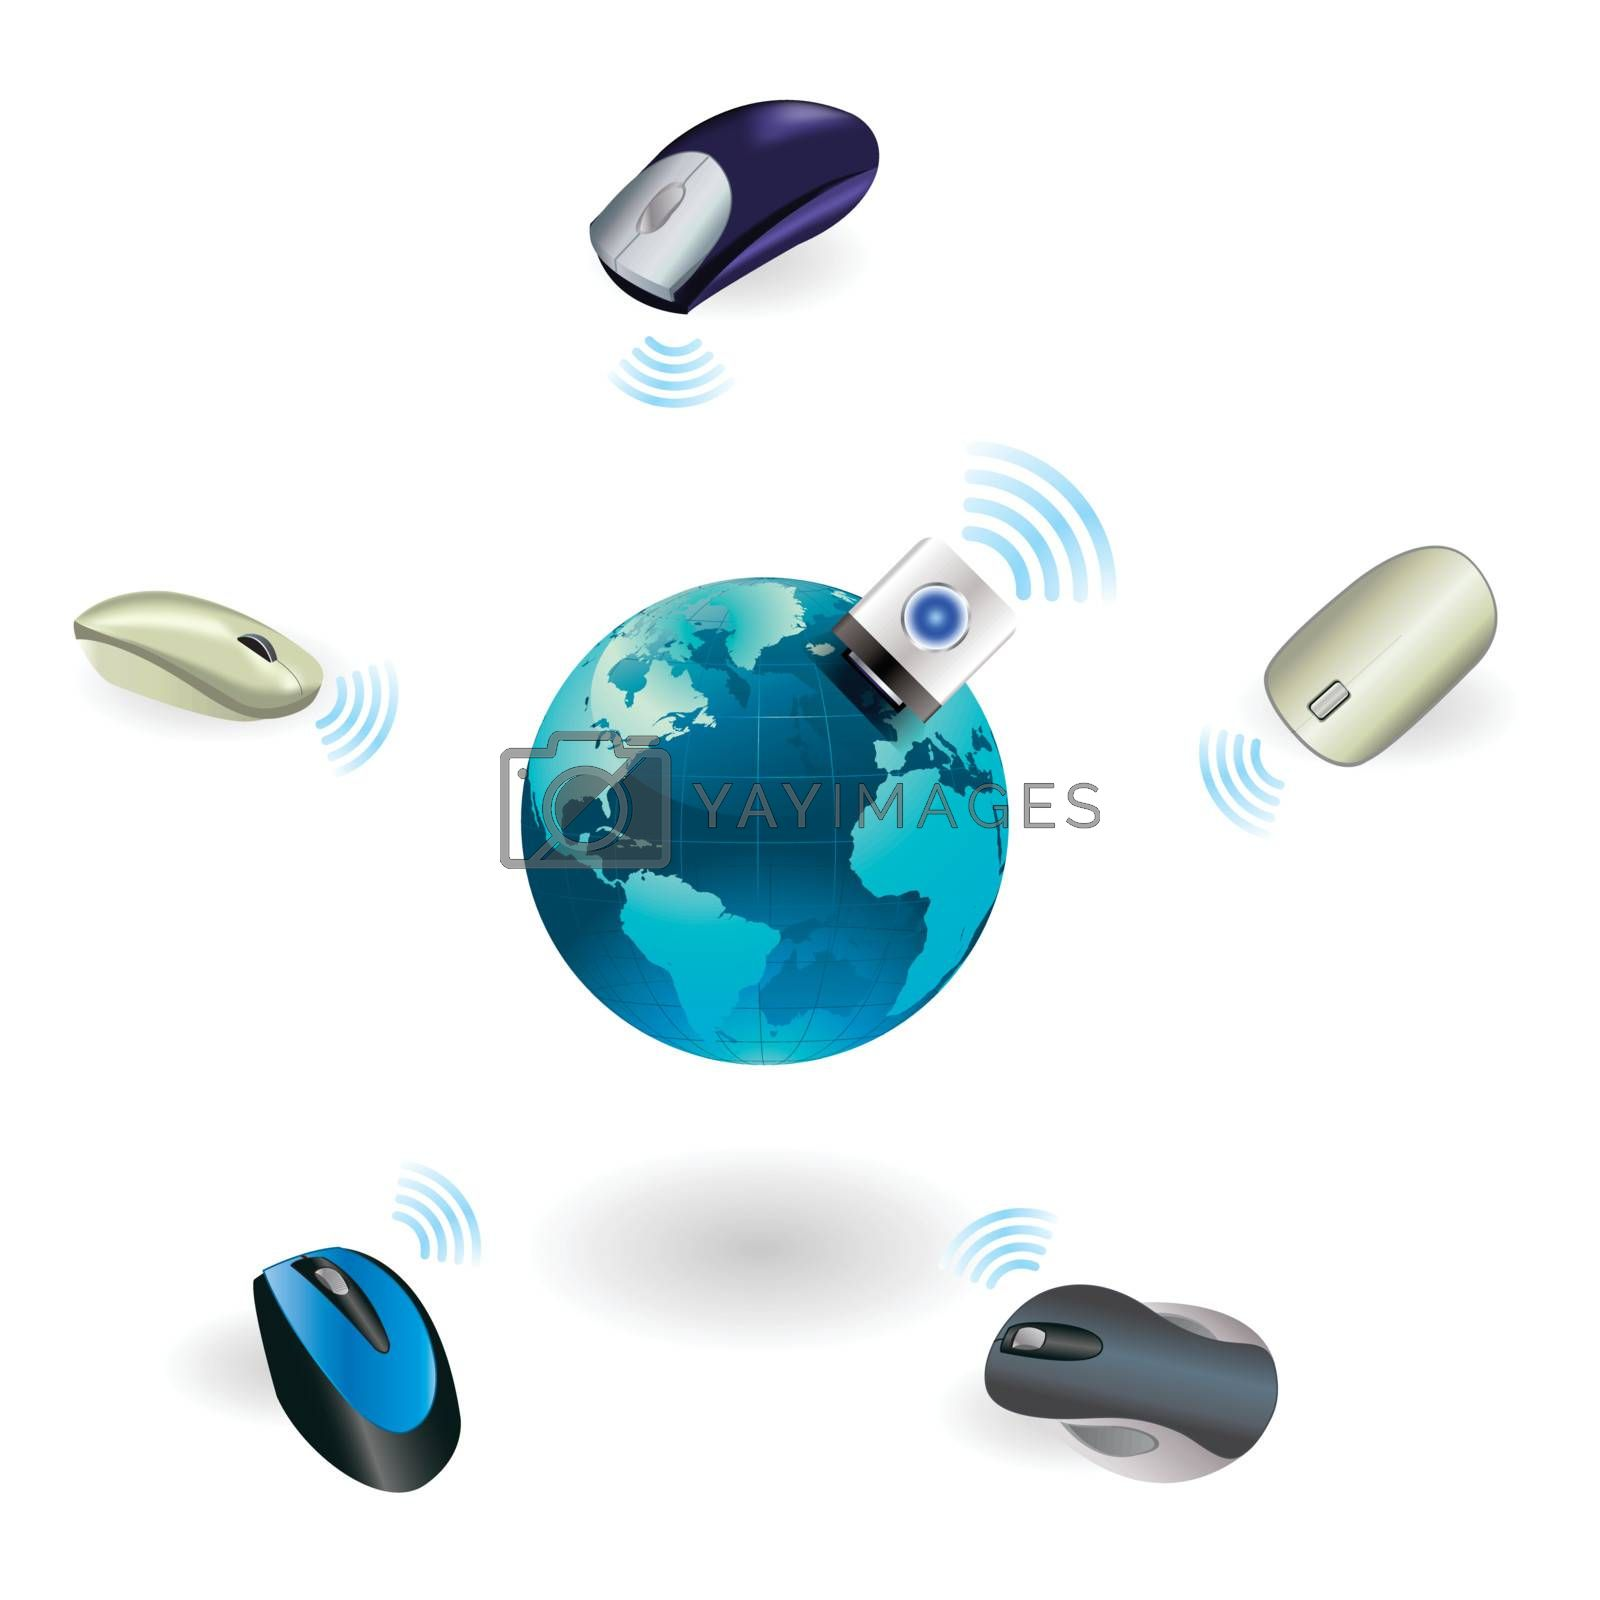 Wireless mouse connect with global on Isolated Illustration